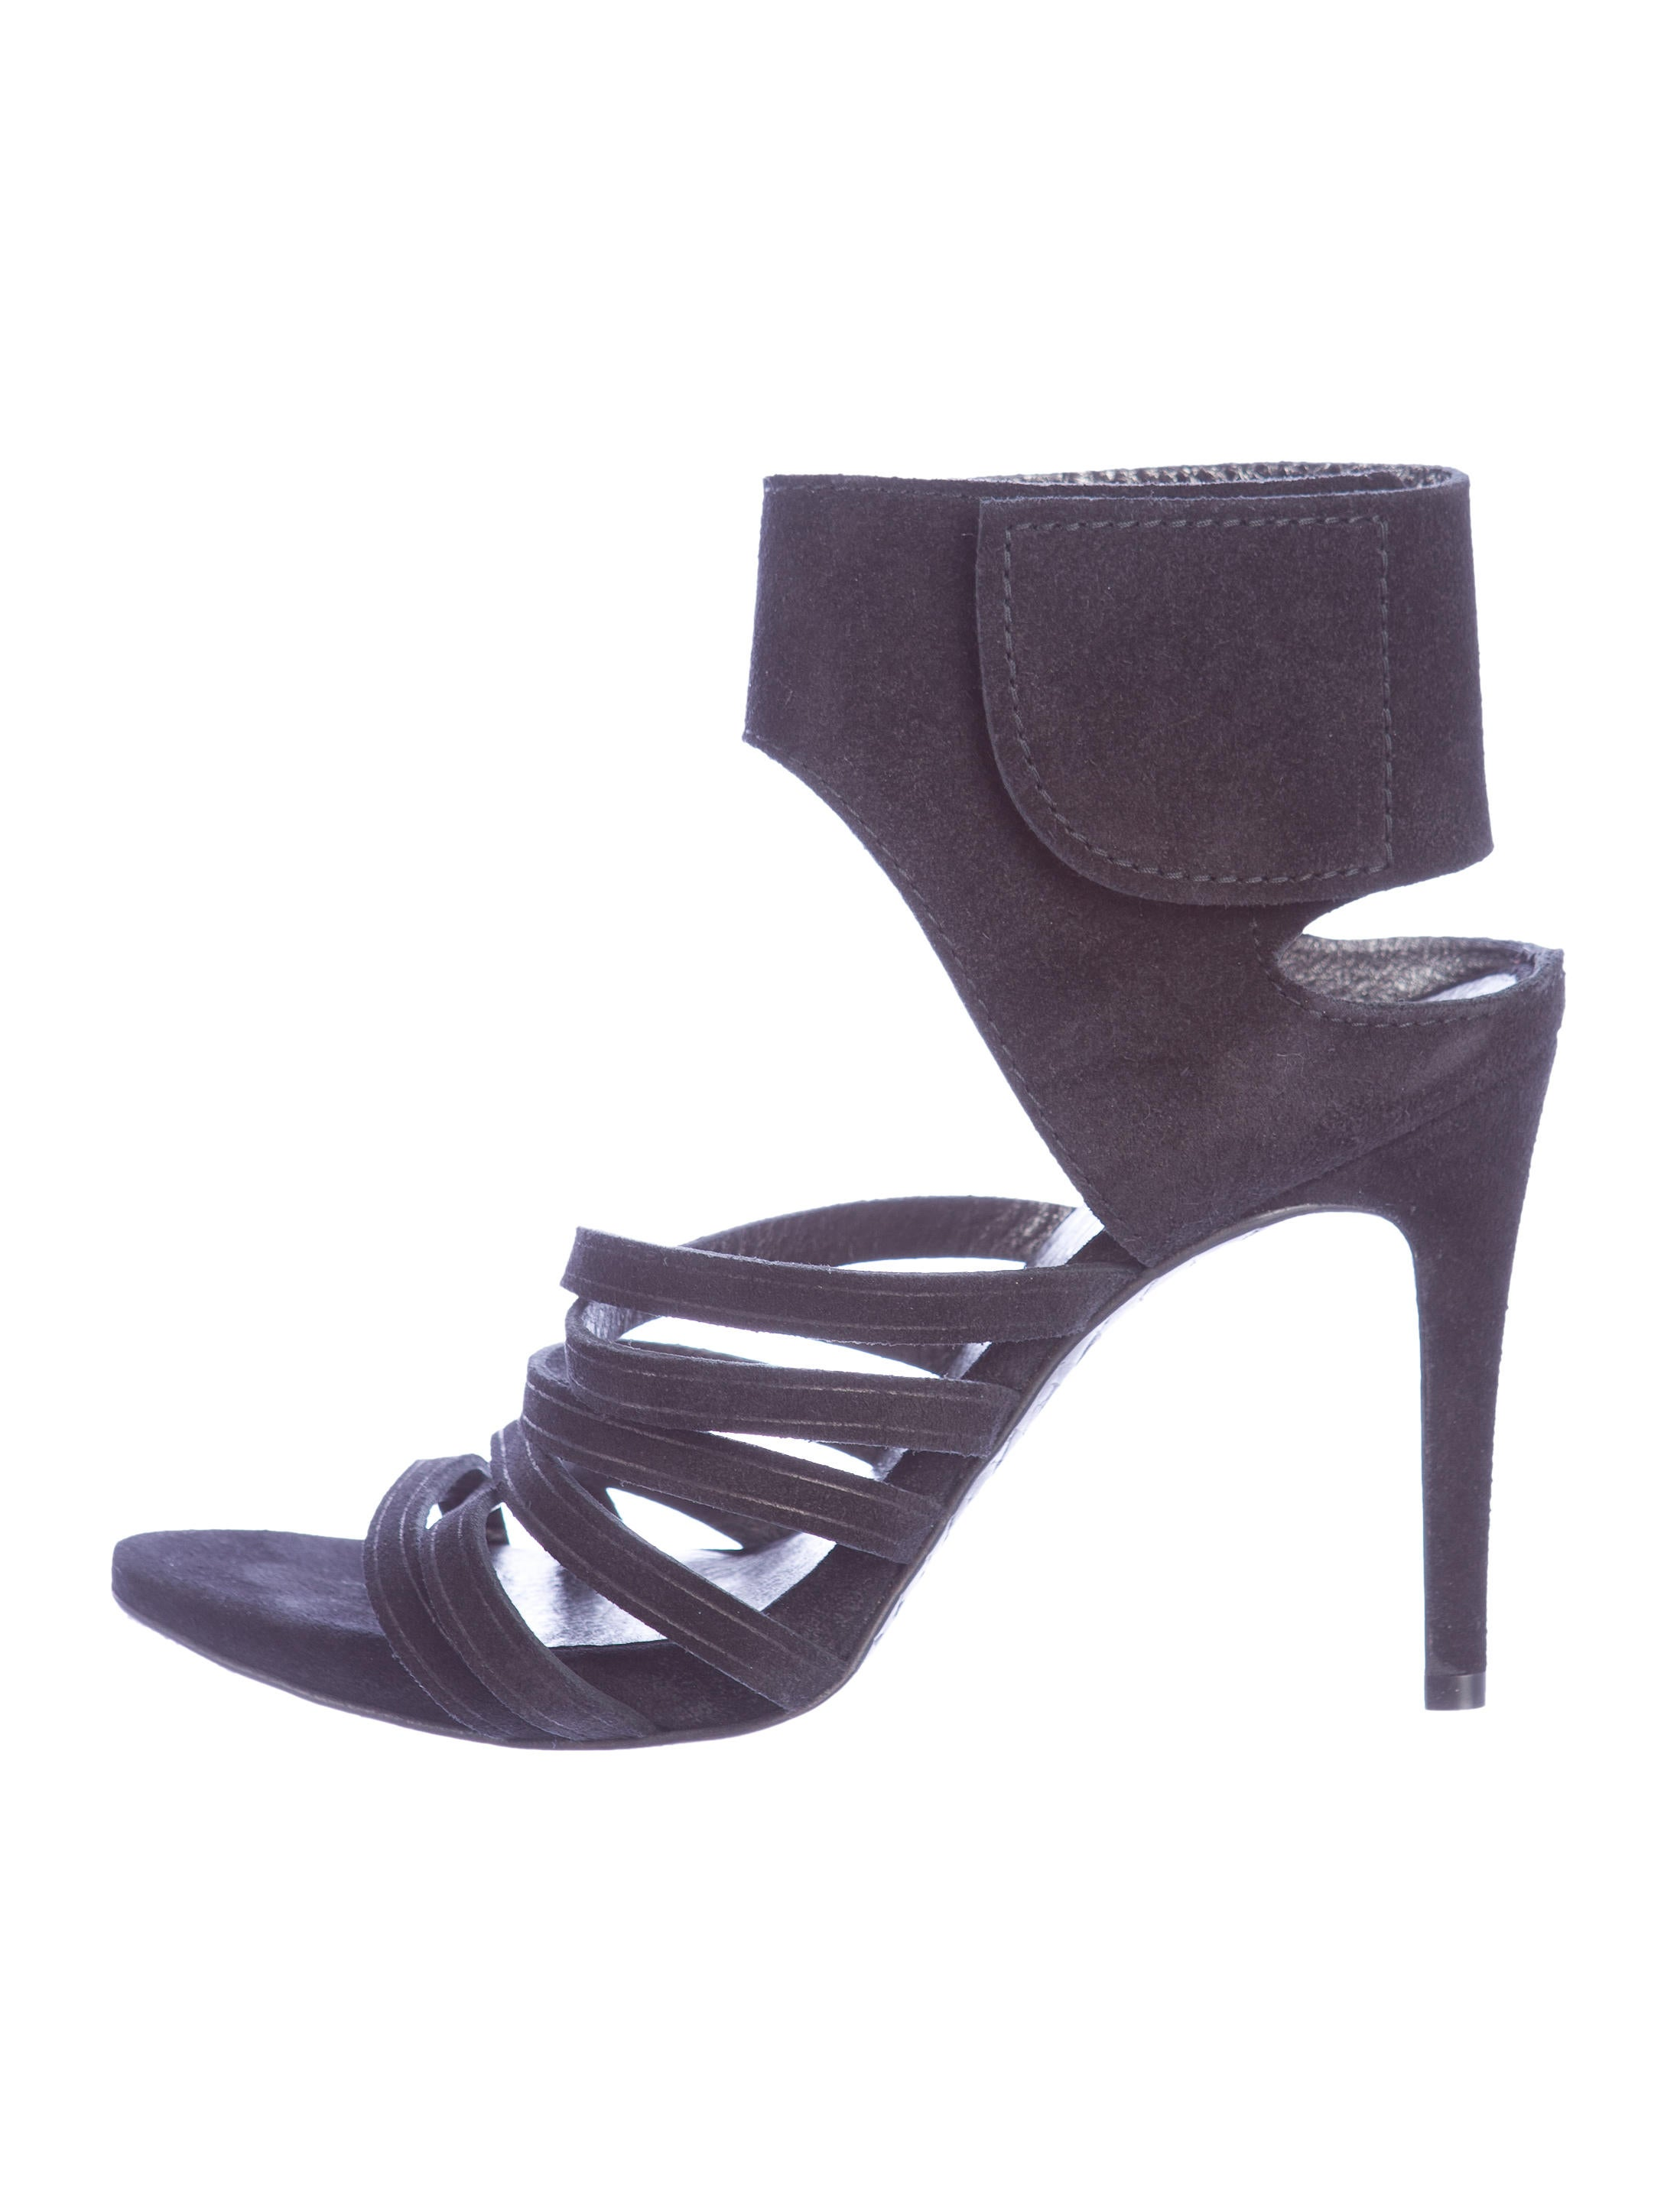 Pedro Garcia Sanna Multistrap Sandals cheap sale best prices free shipping real buy cheap the cheapest best place online LwNr52